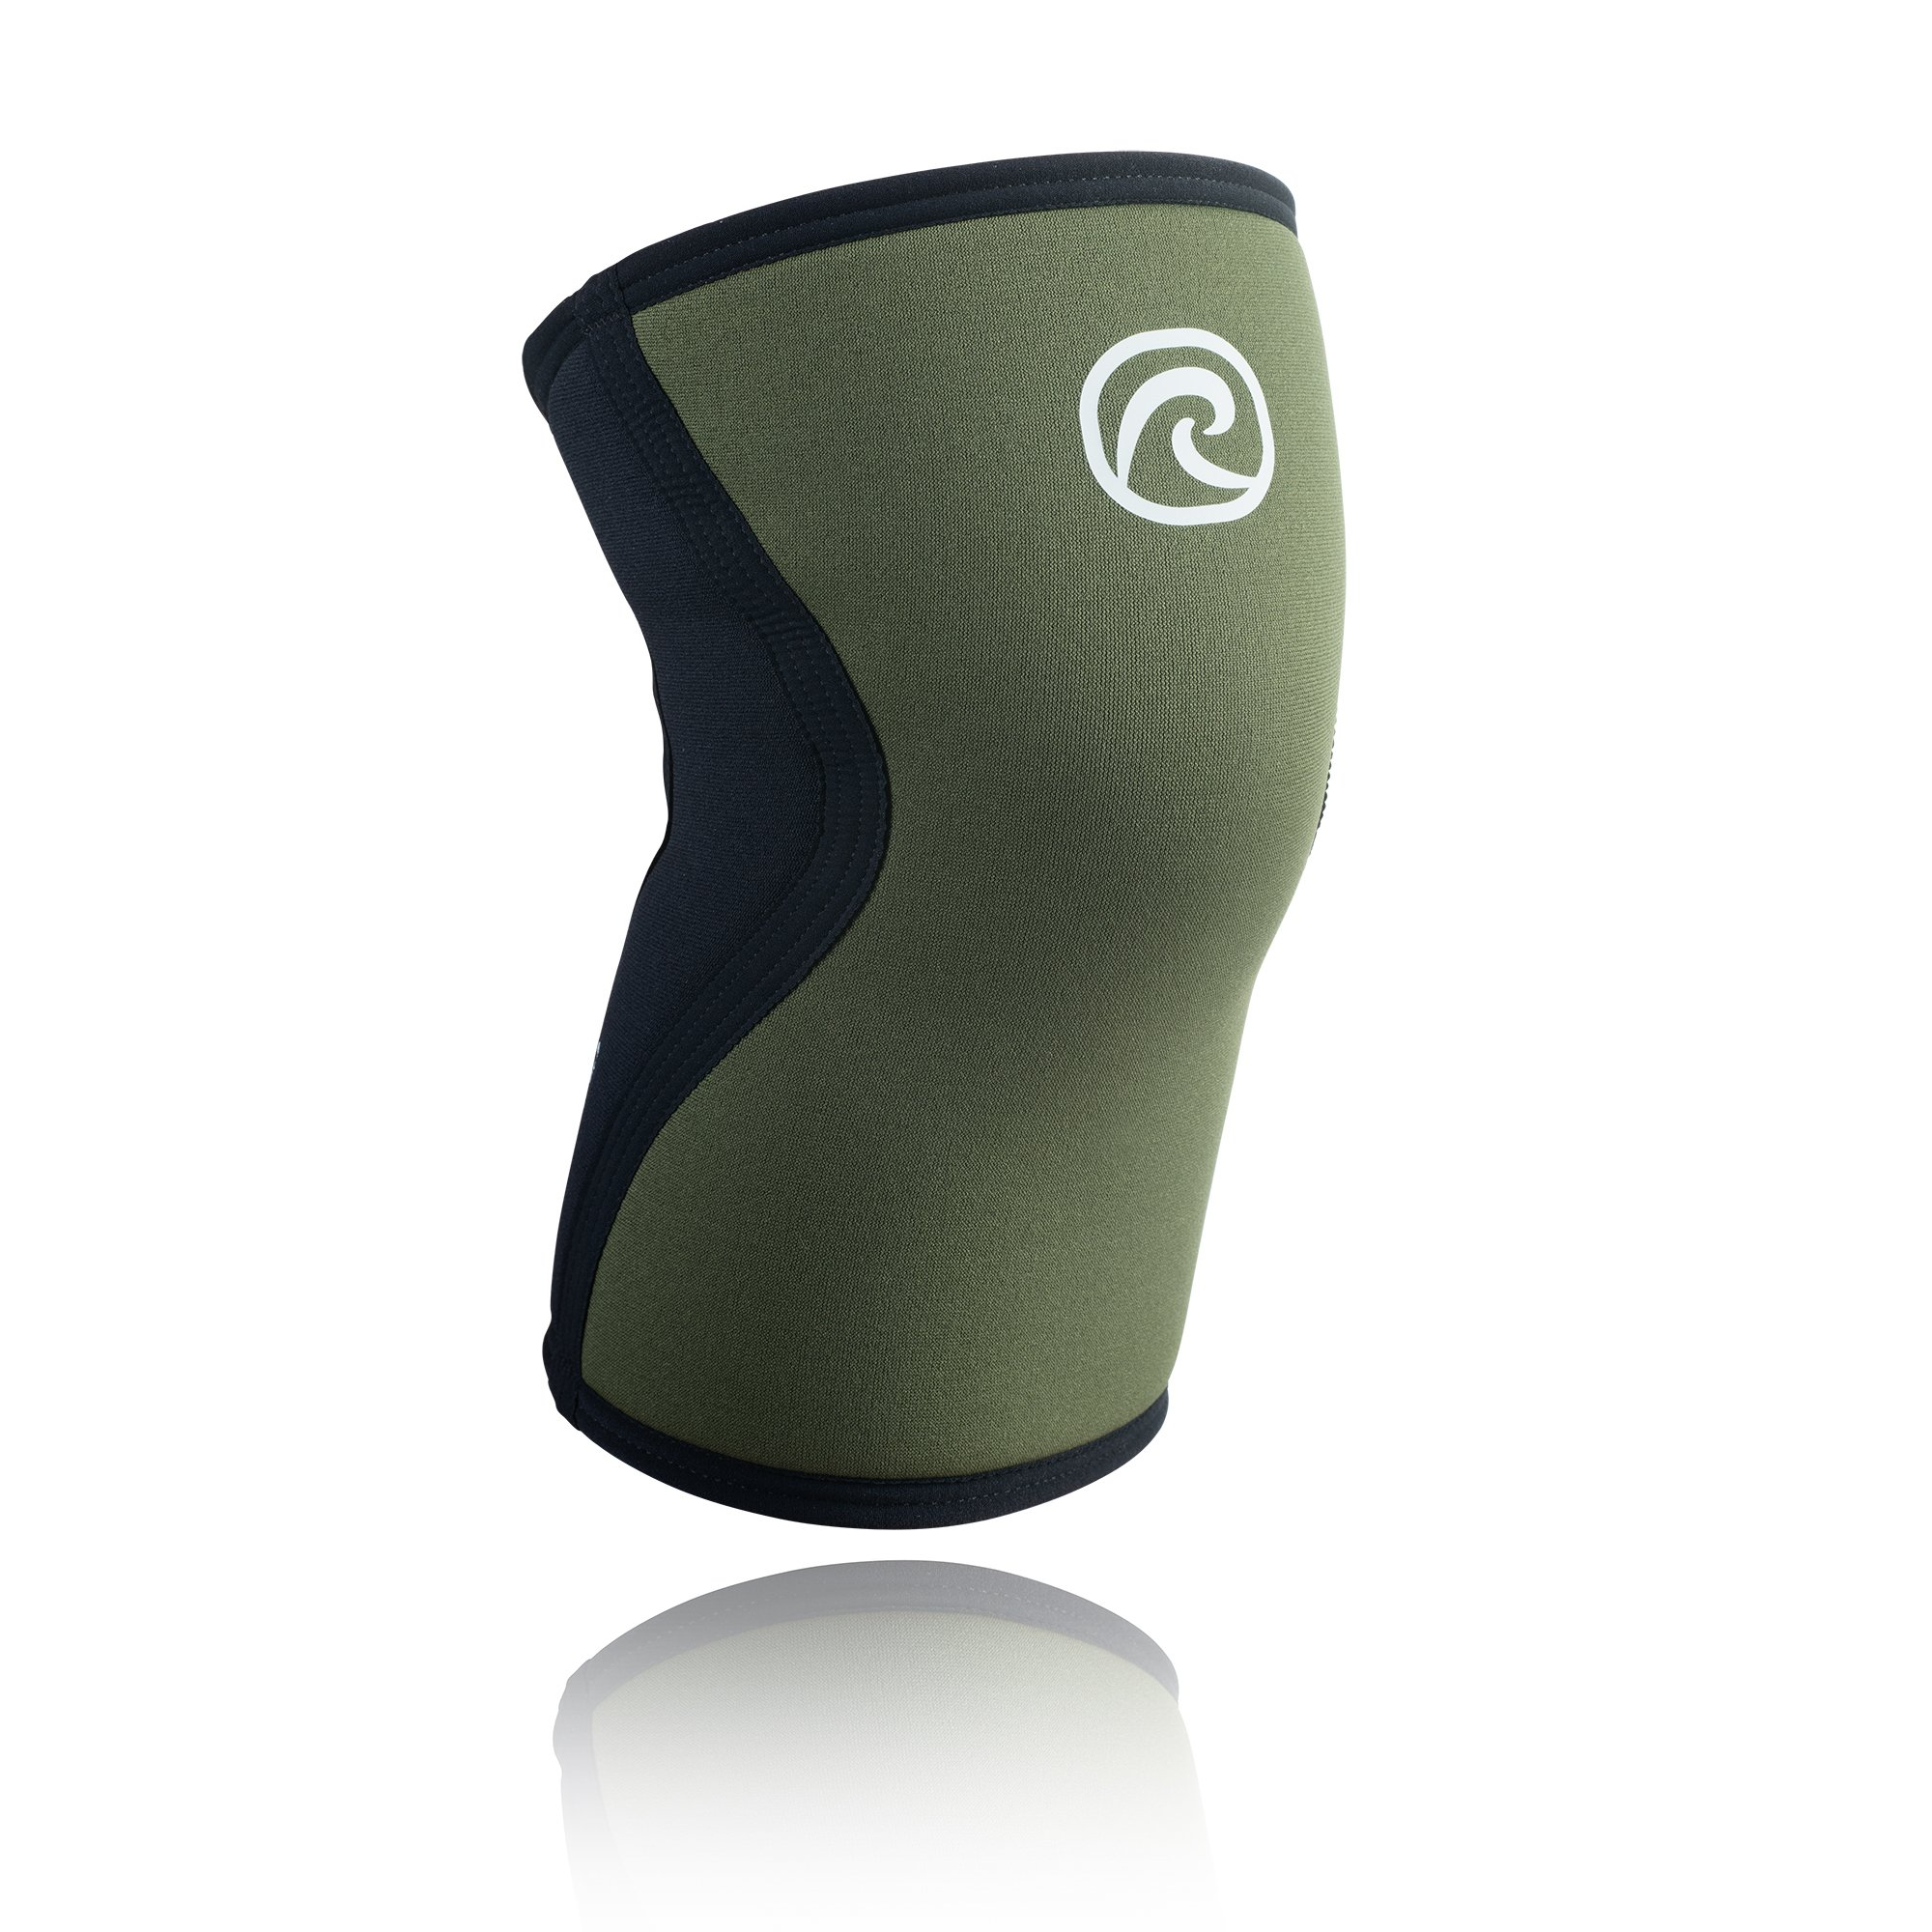 Rehband Rx Knee Support 7751 5mm - X-Small - Green- Expand Your Movement + Cross Training Potential - Knee Sleeve for Fitness - Feel Stronger + More Secure - Relieve Strain - 1 Sleeve